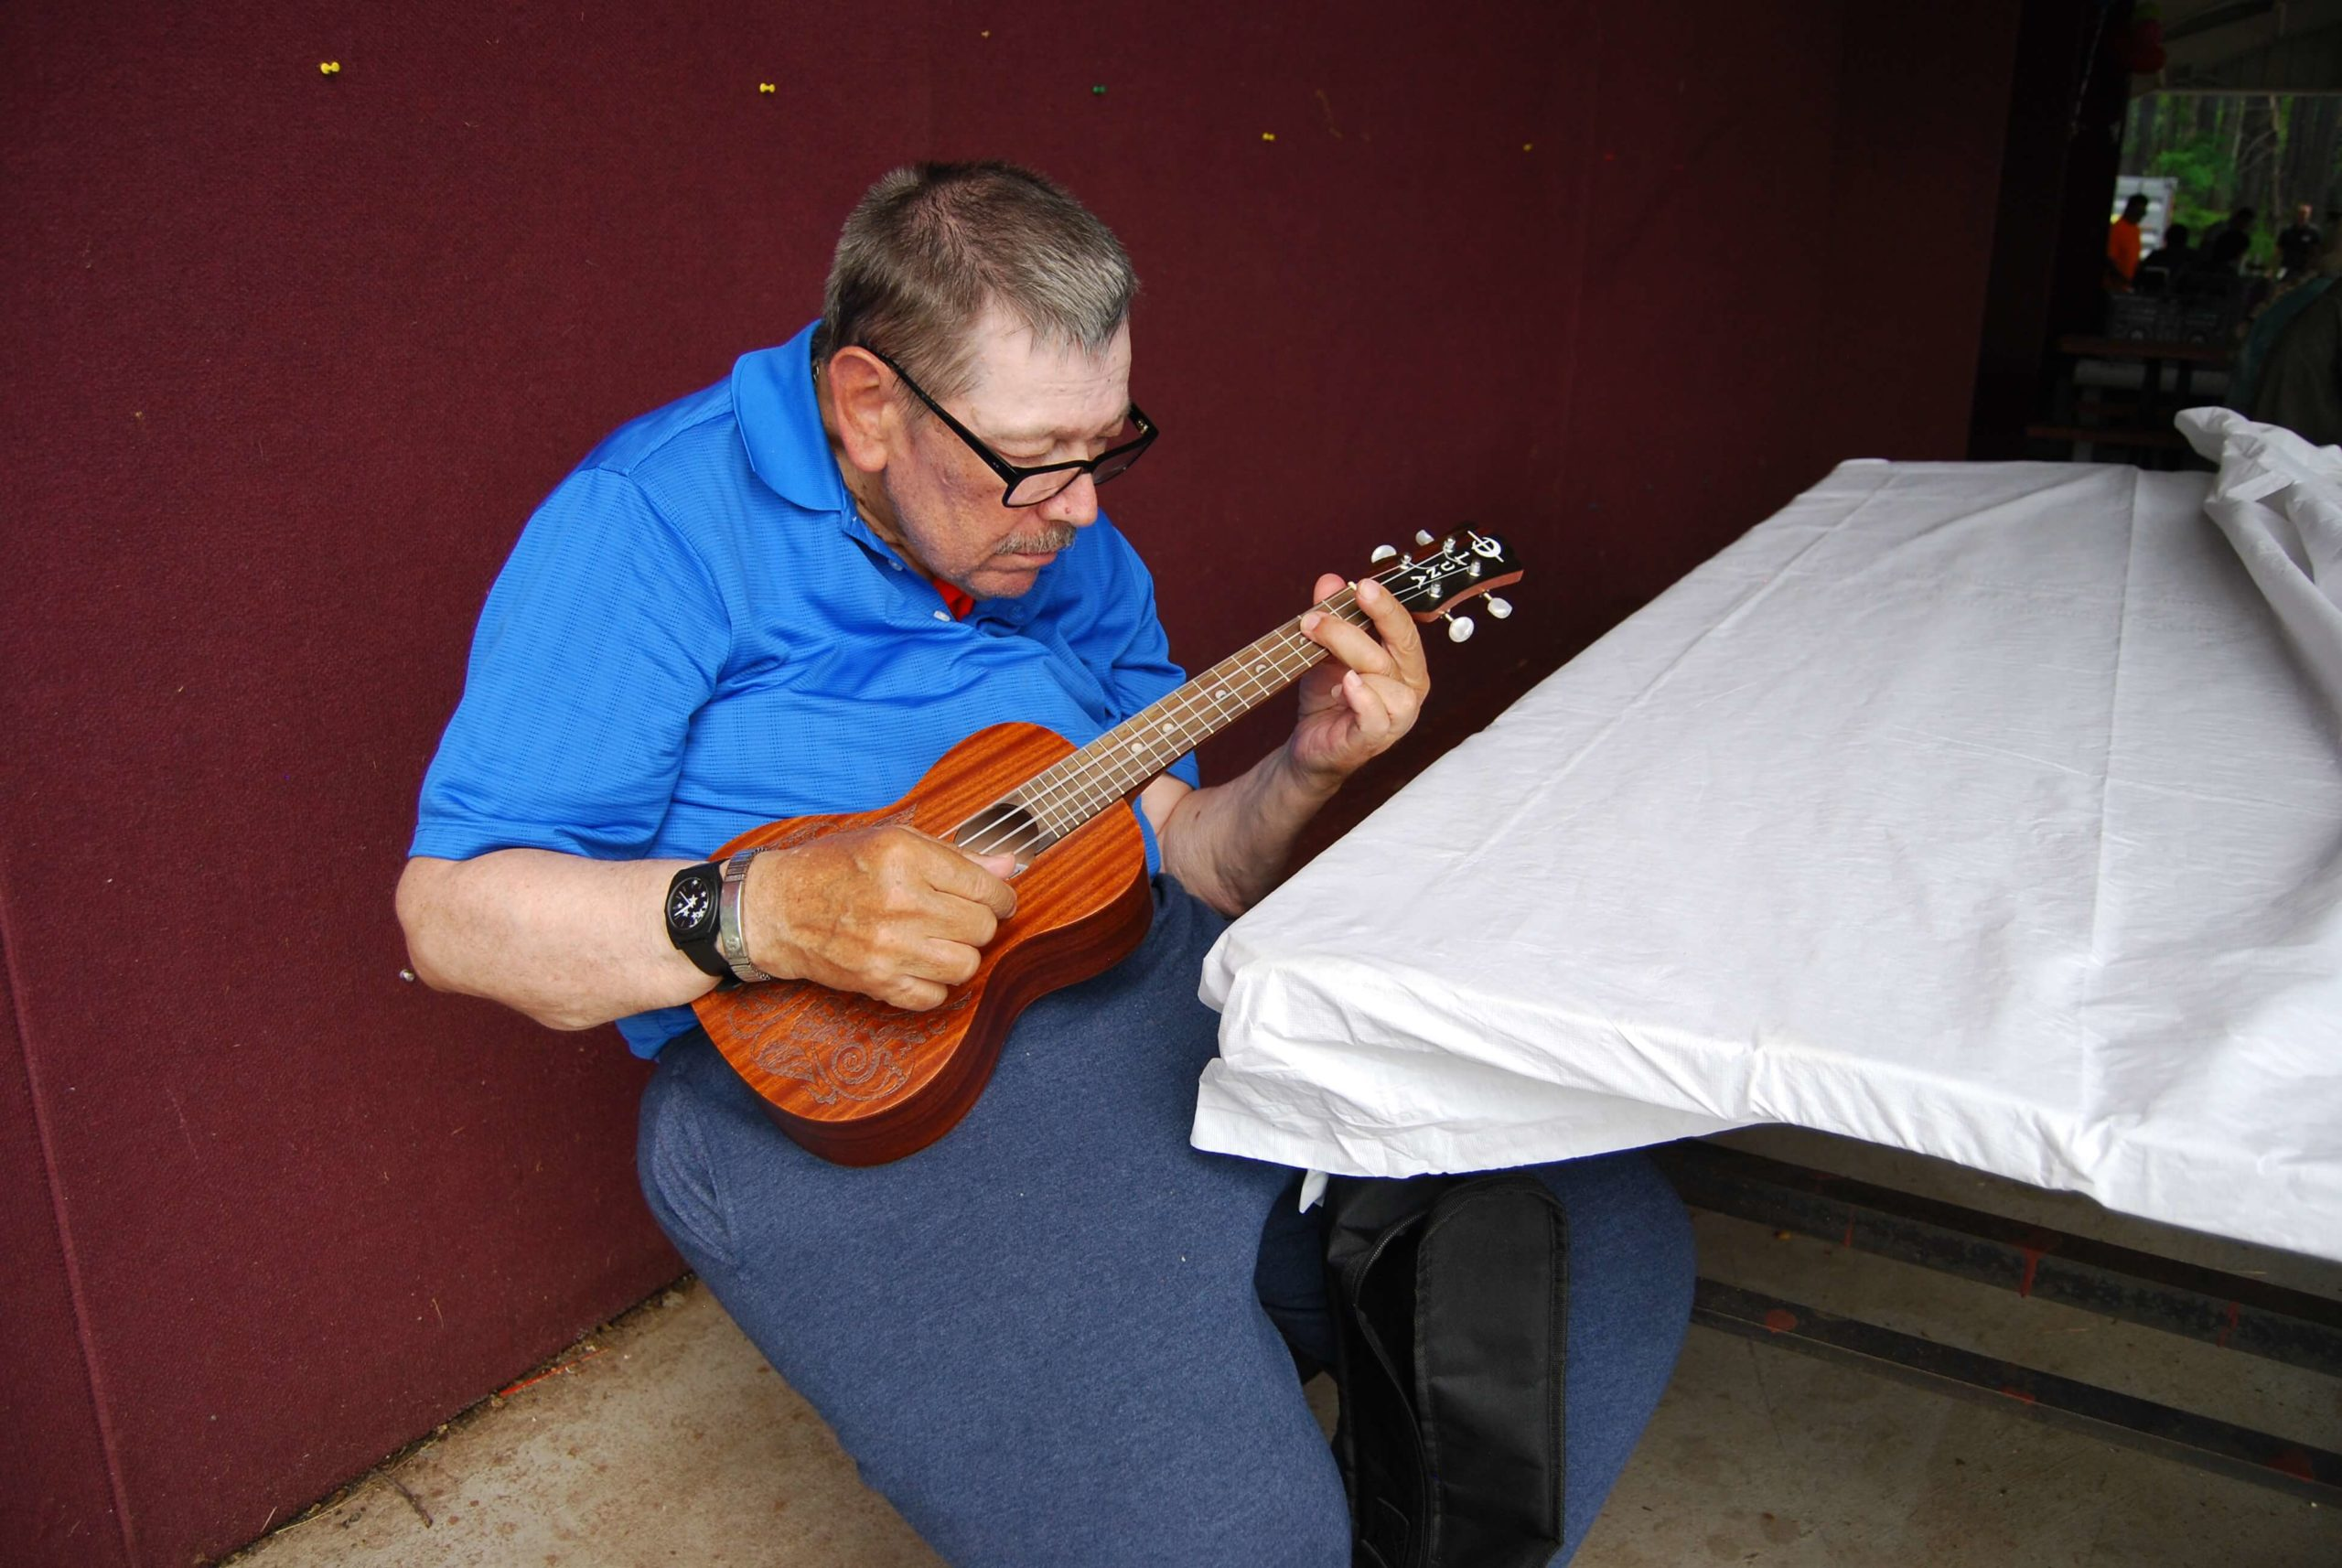 Participant playing Guitar